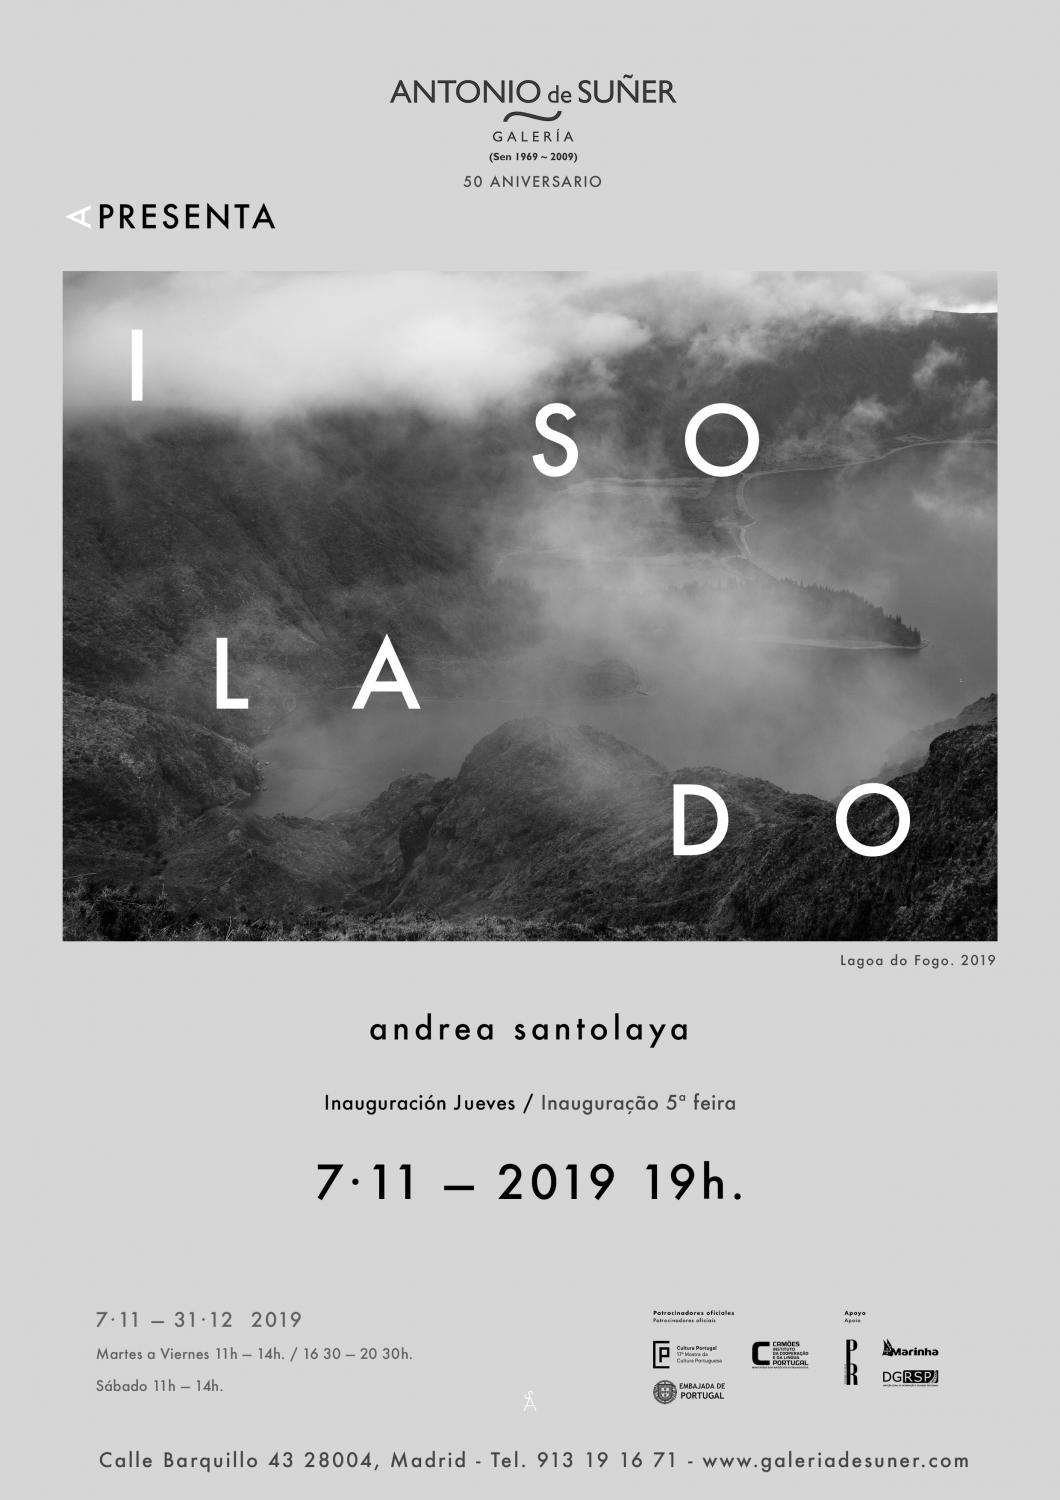 Art and Documentary Photography - Loading Isolado_AndreaSantolaya_Invitacion_v1.jpg